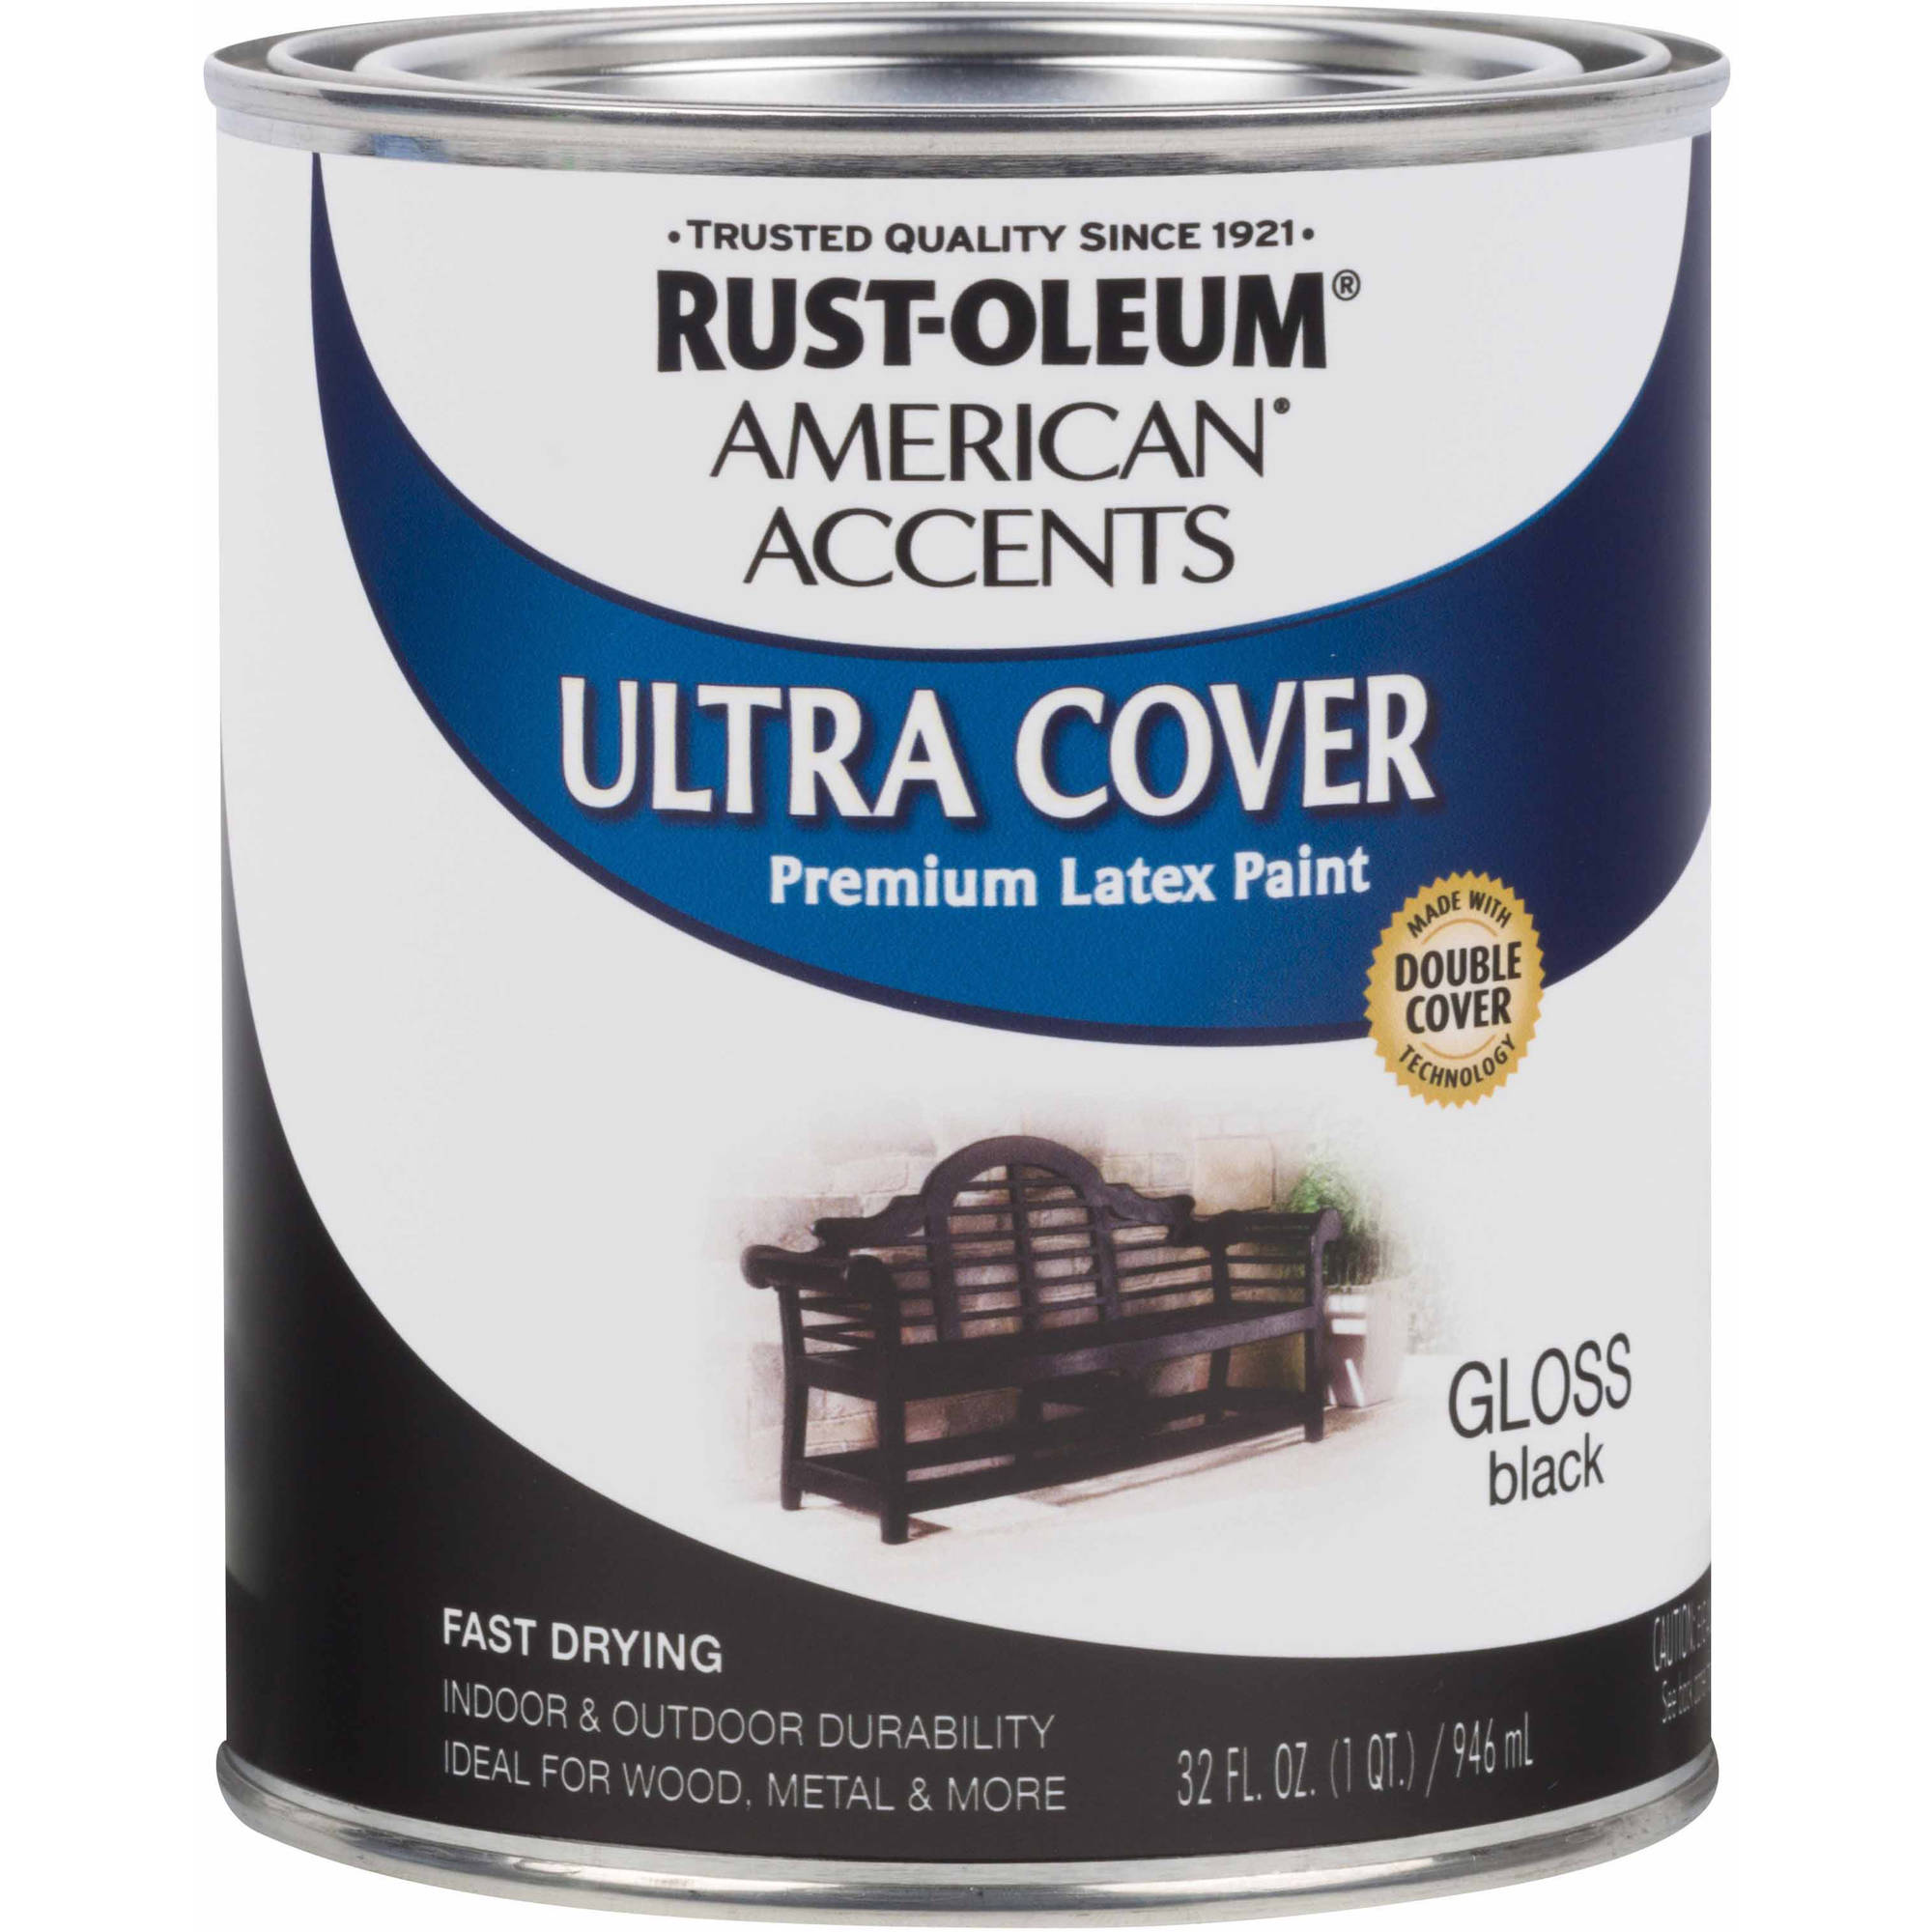 Rust-Oleum American Accents Ultra Cover Quart, Gloss Black